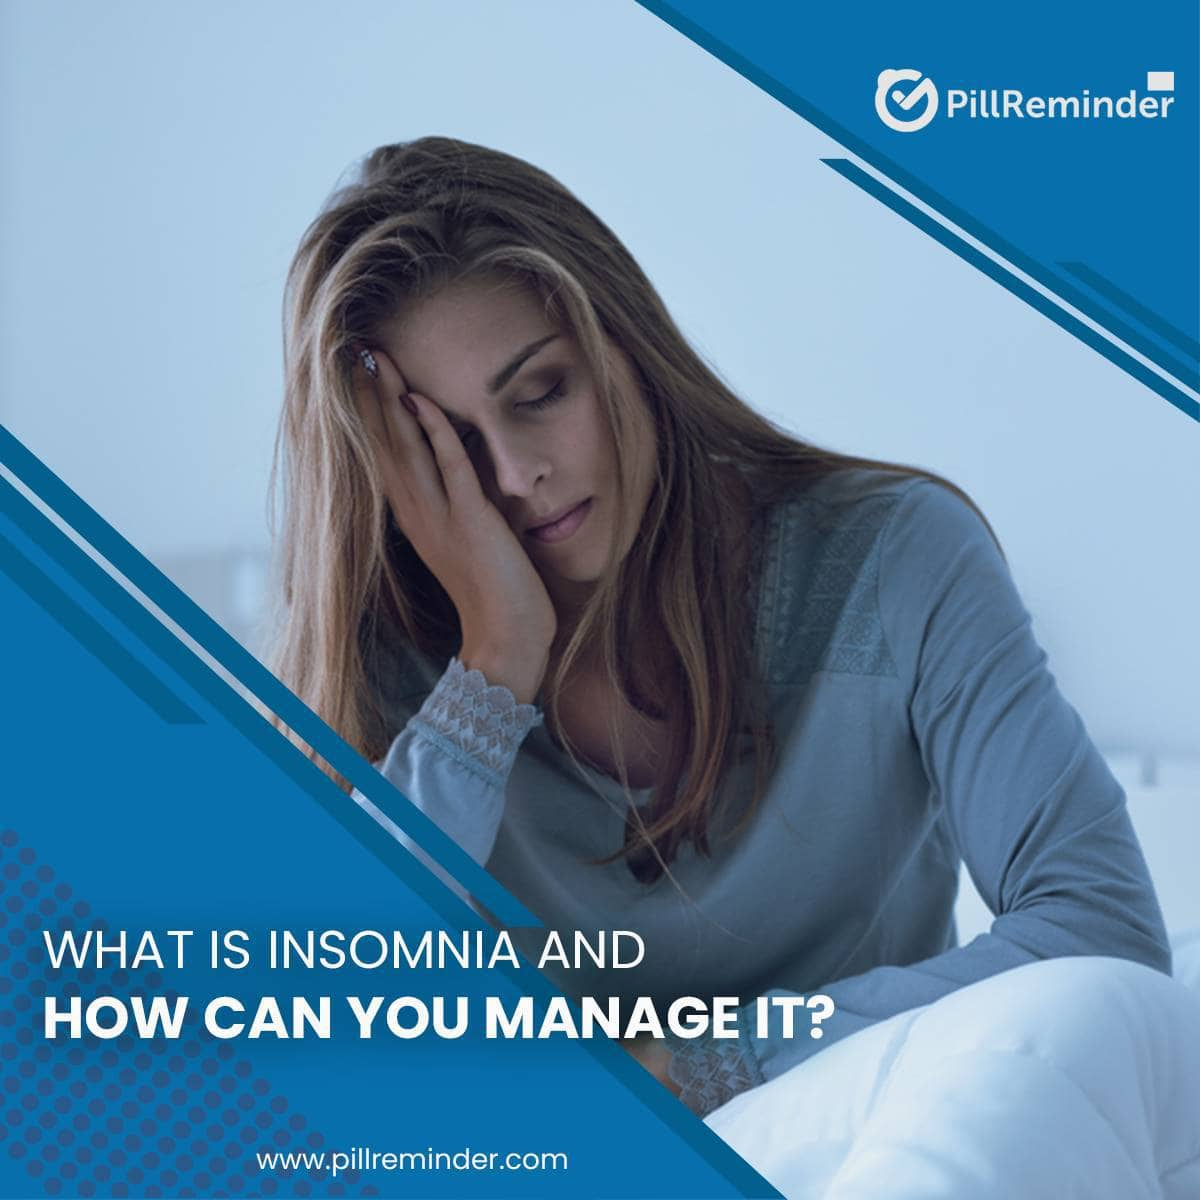 What Is Insomnia And How Can You Manage It